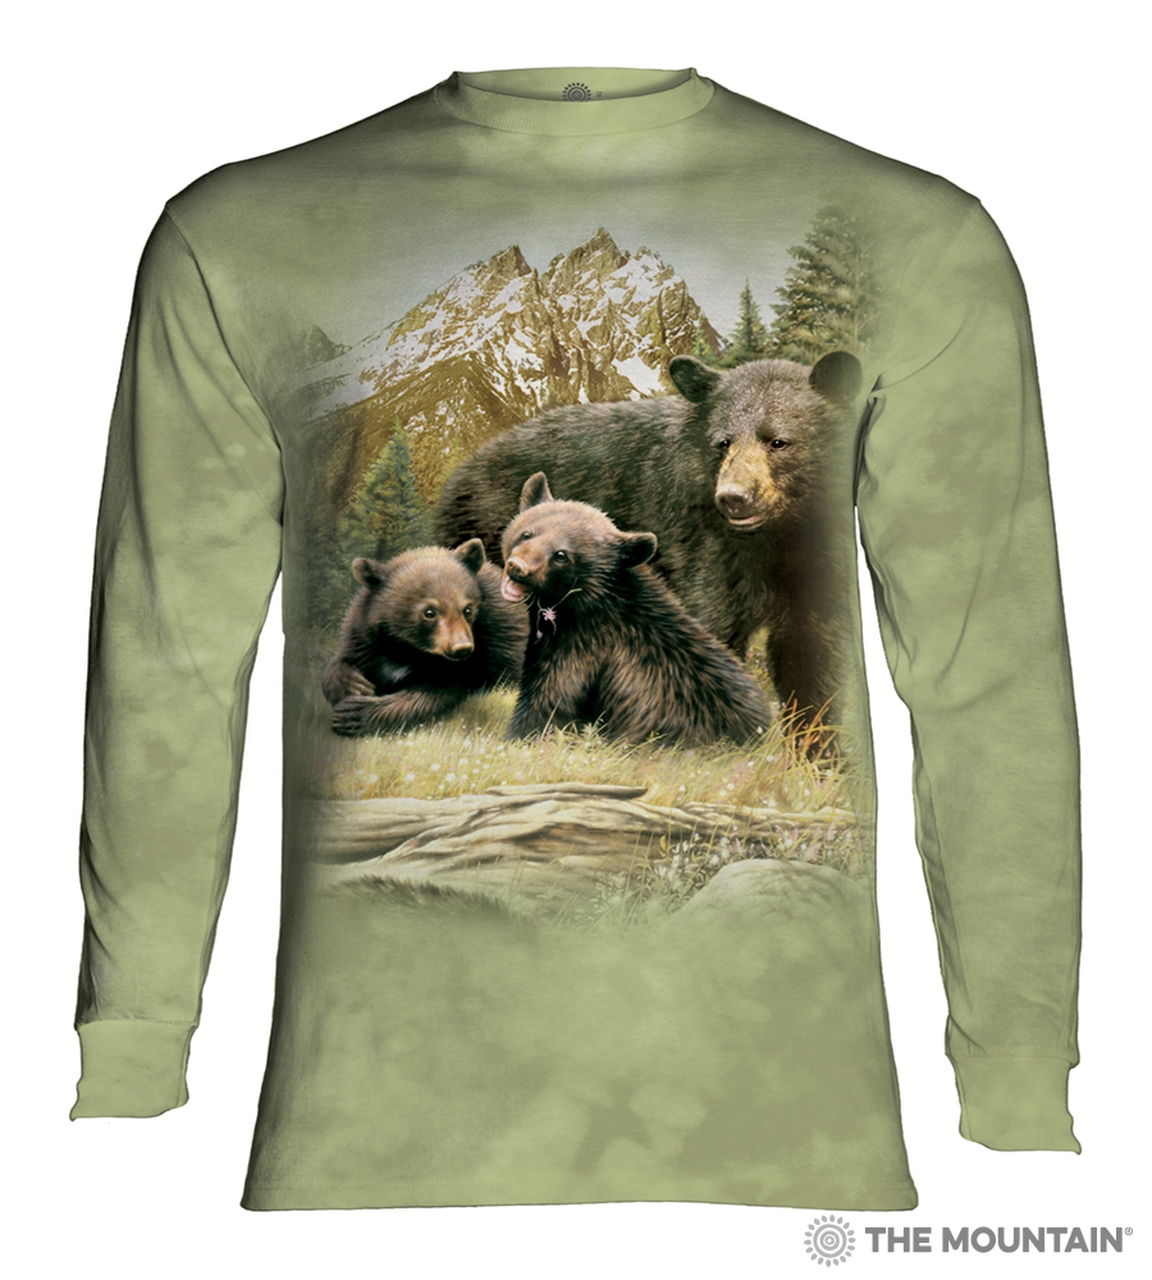 Black Bear Family - 45-5980 - Adult Long Sleeve T-shirt